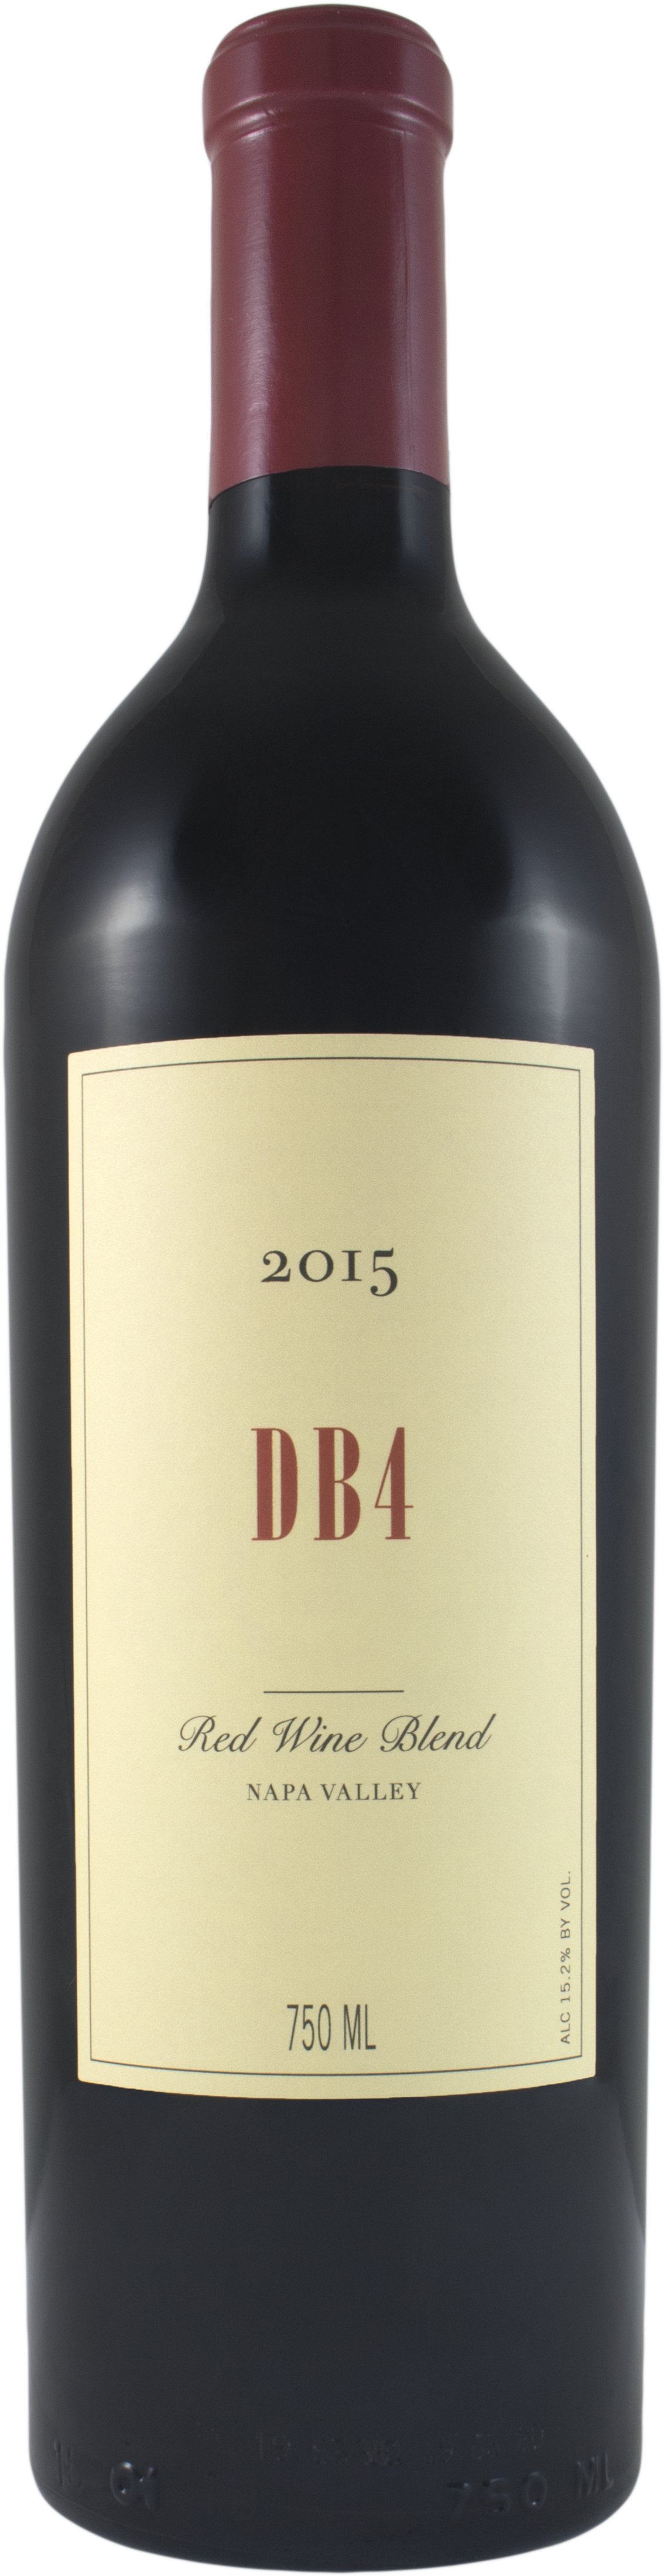 Bryant Family Vineyard 'DB4' Red Blend